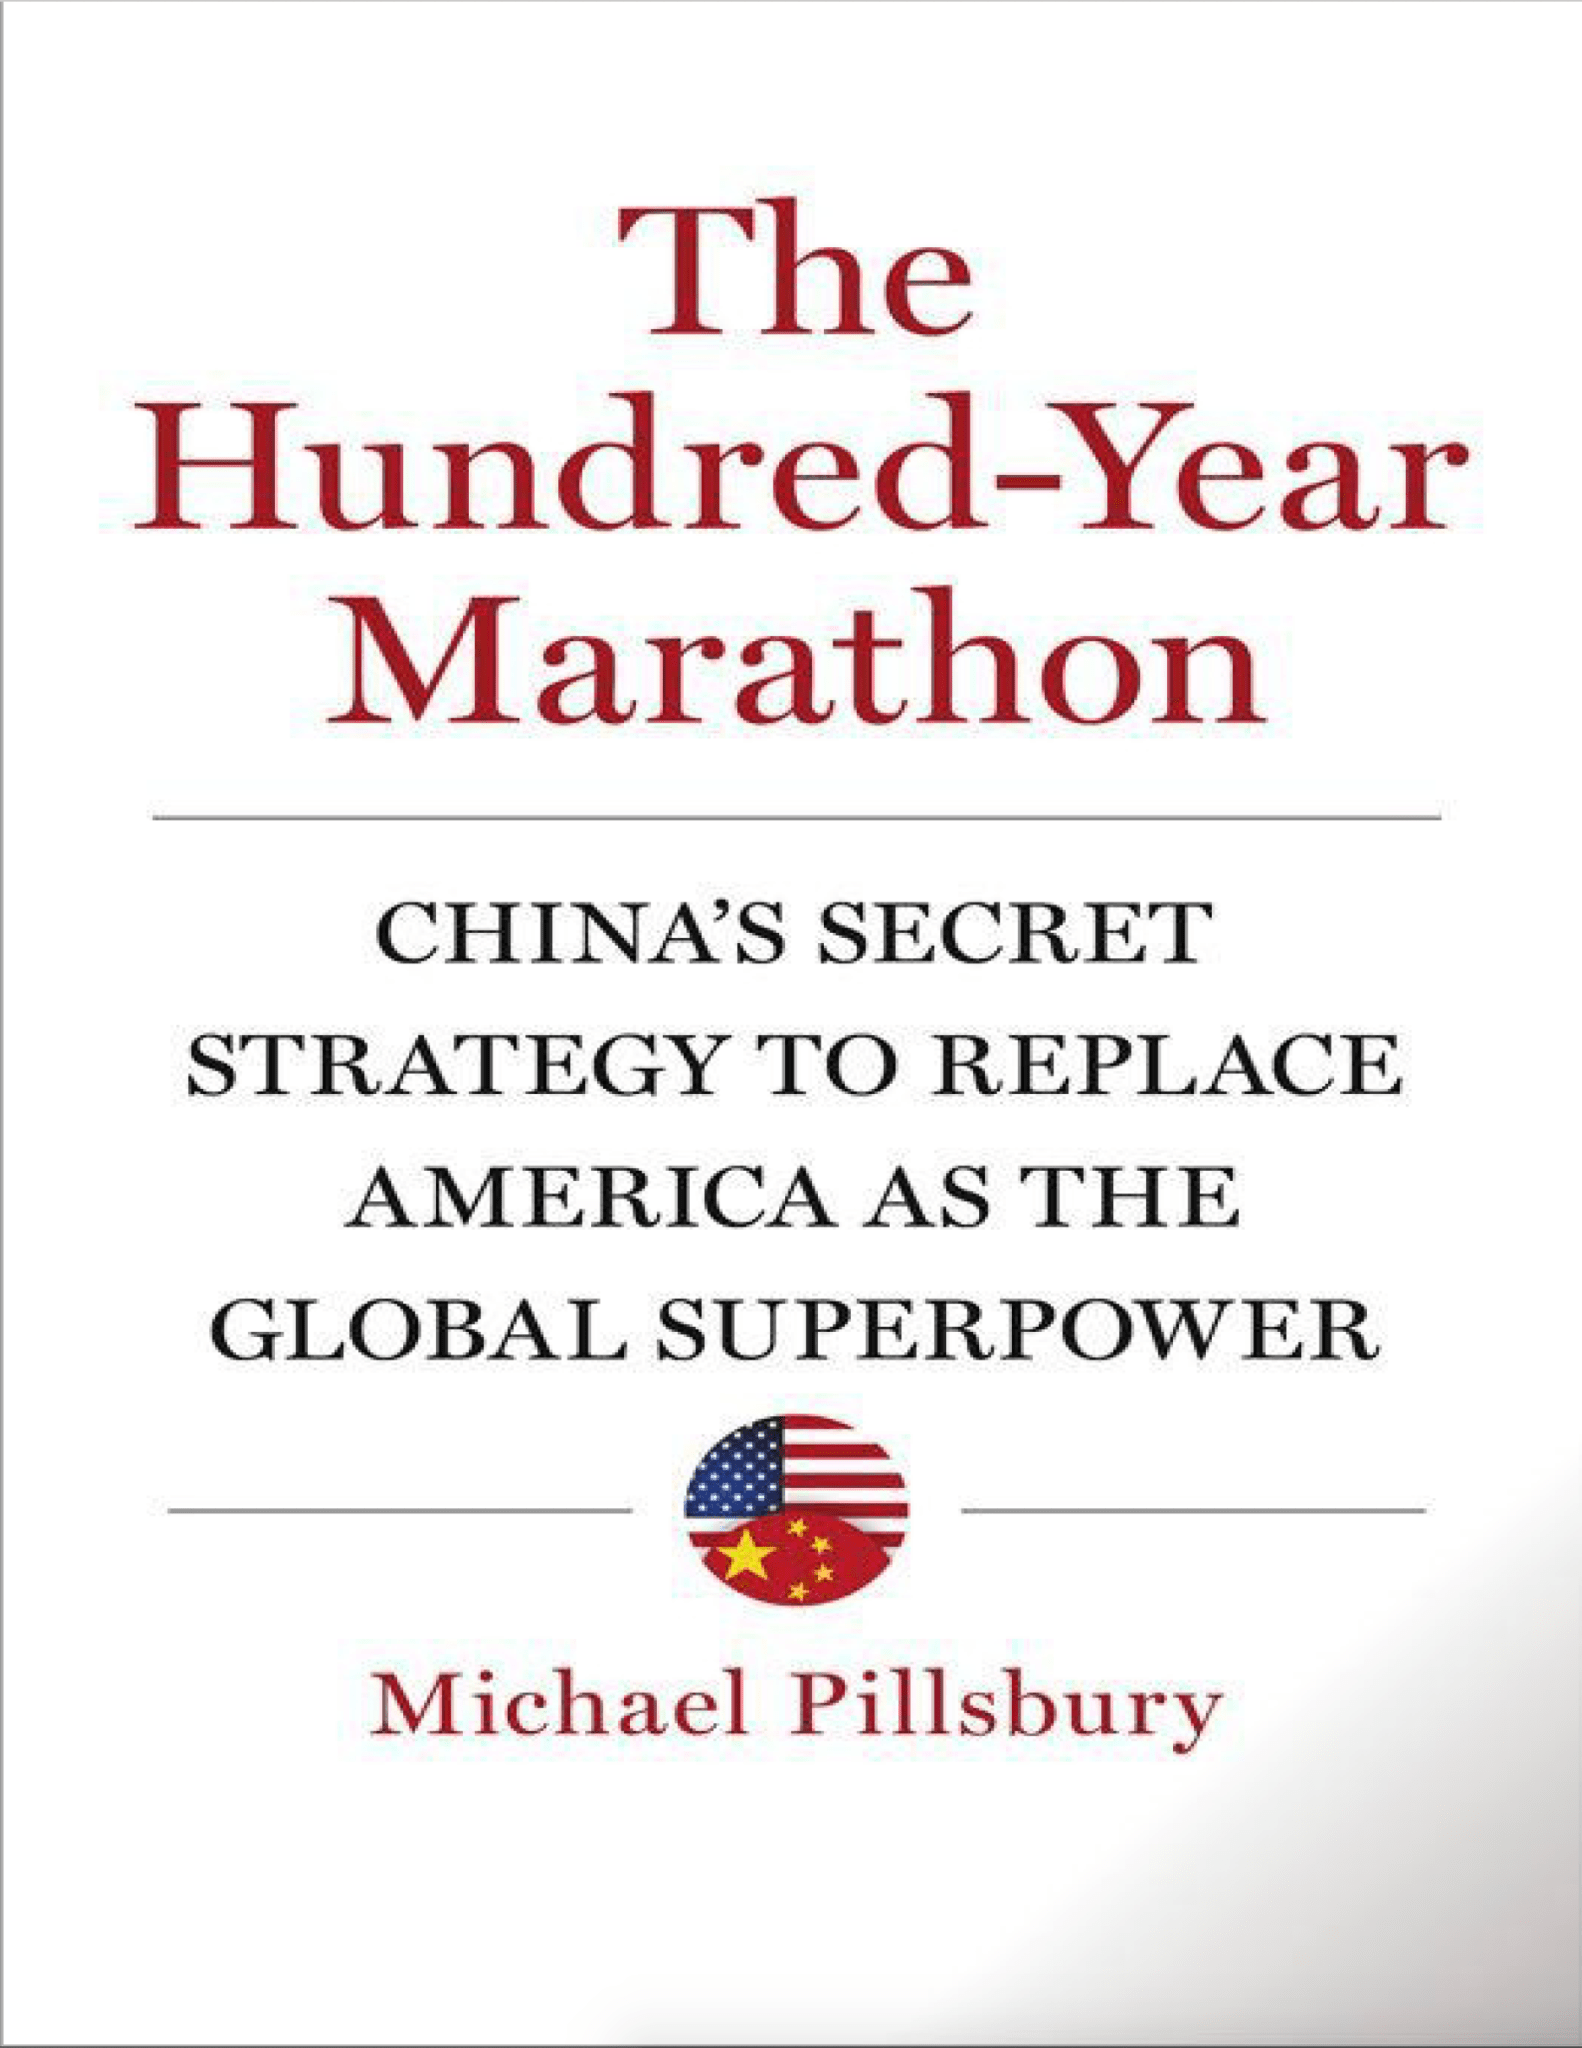 The Hundred-Year Marathon: China's Secret Strategy to Replace America as the Global Superpower, ئېلكىتاب تورى